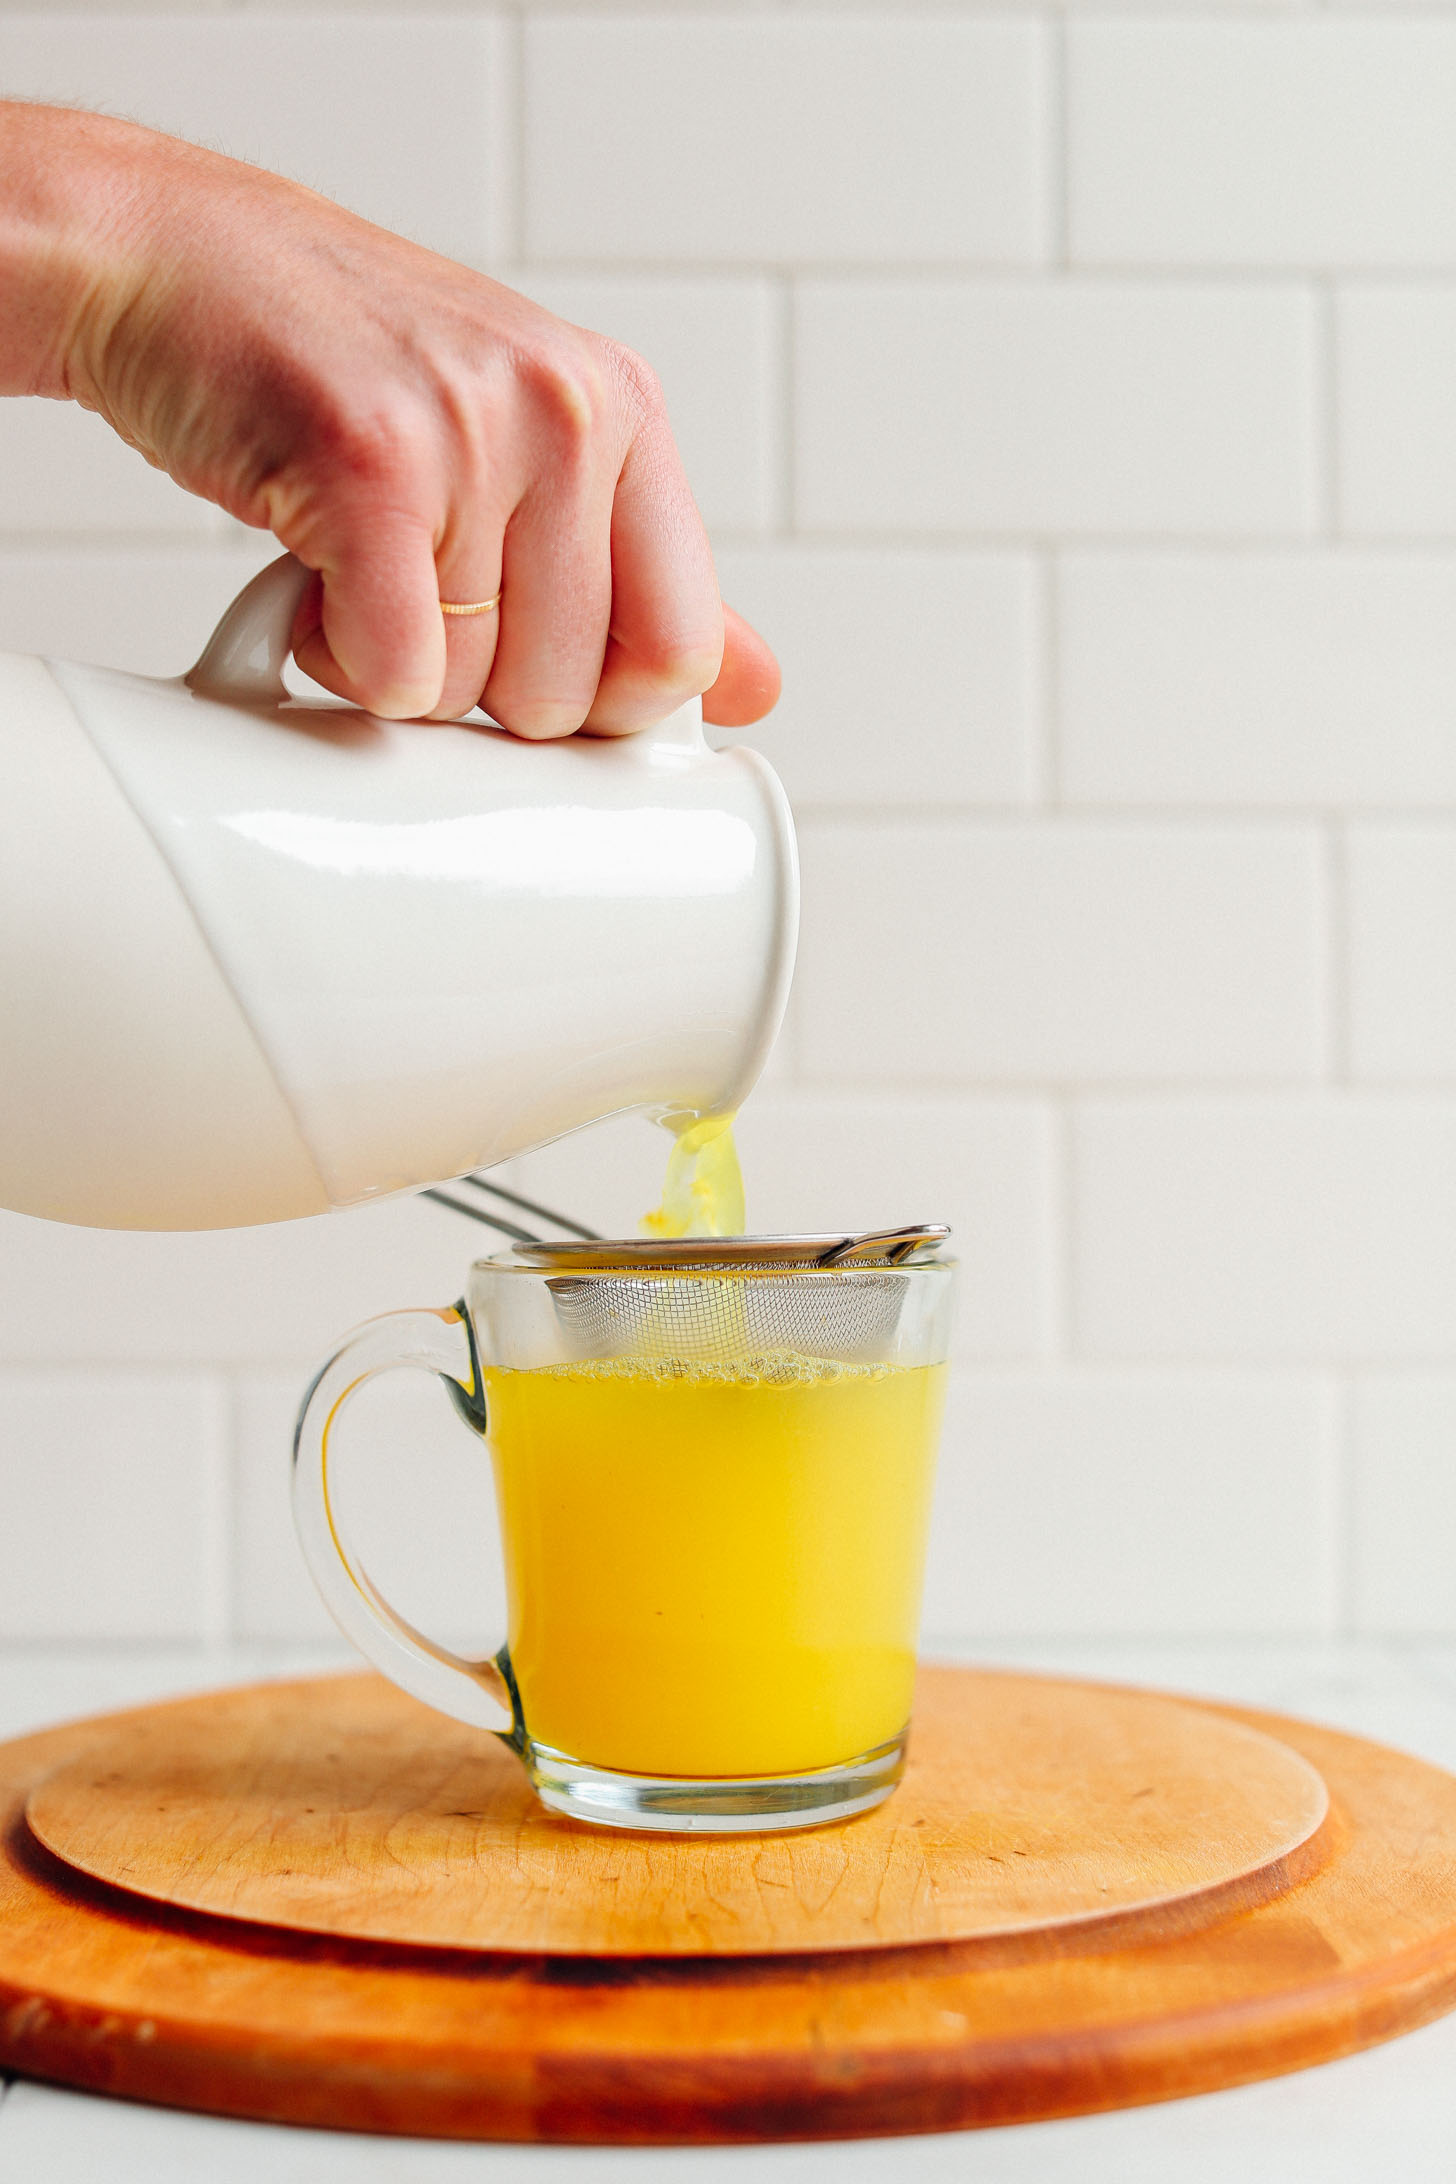 Pouring Turmeric Ginger TONIC through a strainer into a glass mug